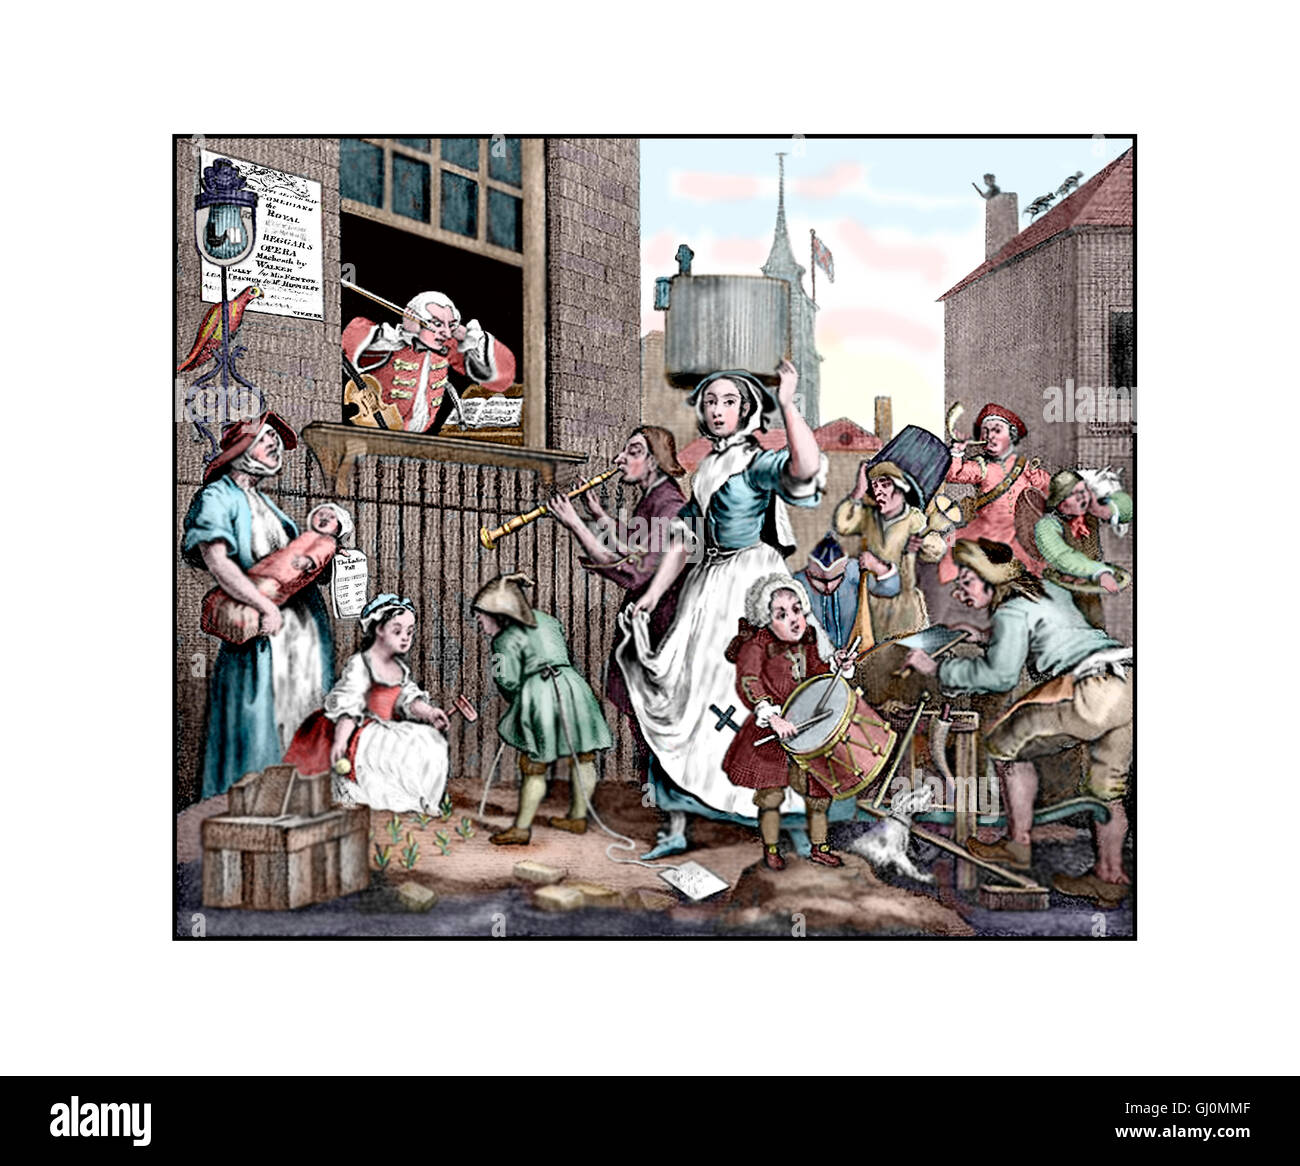 The Enraged Musician, Illustration from the 1741 engraving by William Hogarth, sharpened and coloured - Stock Image